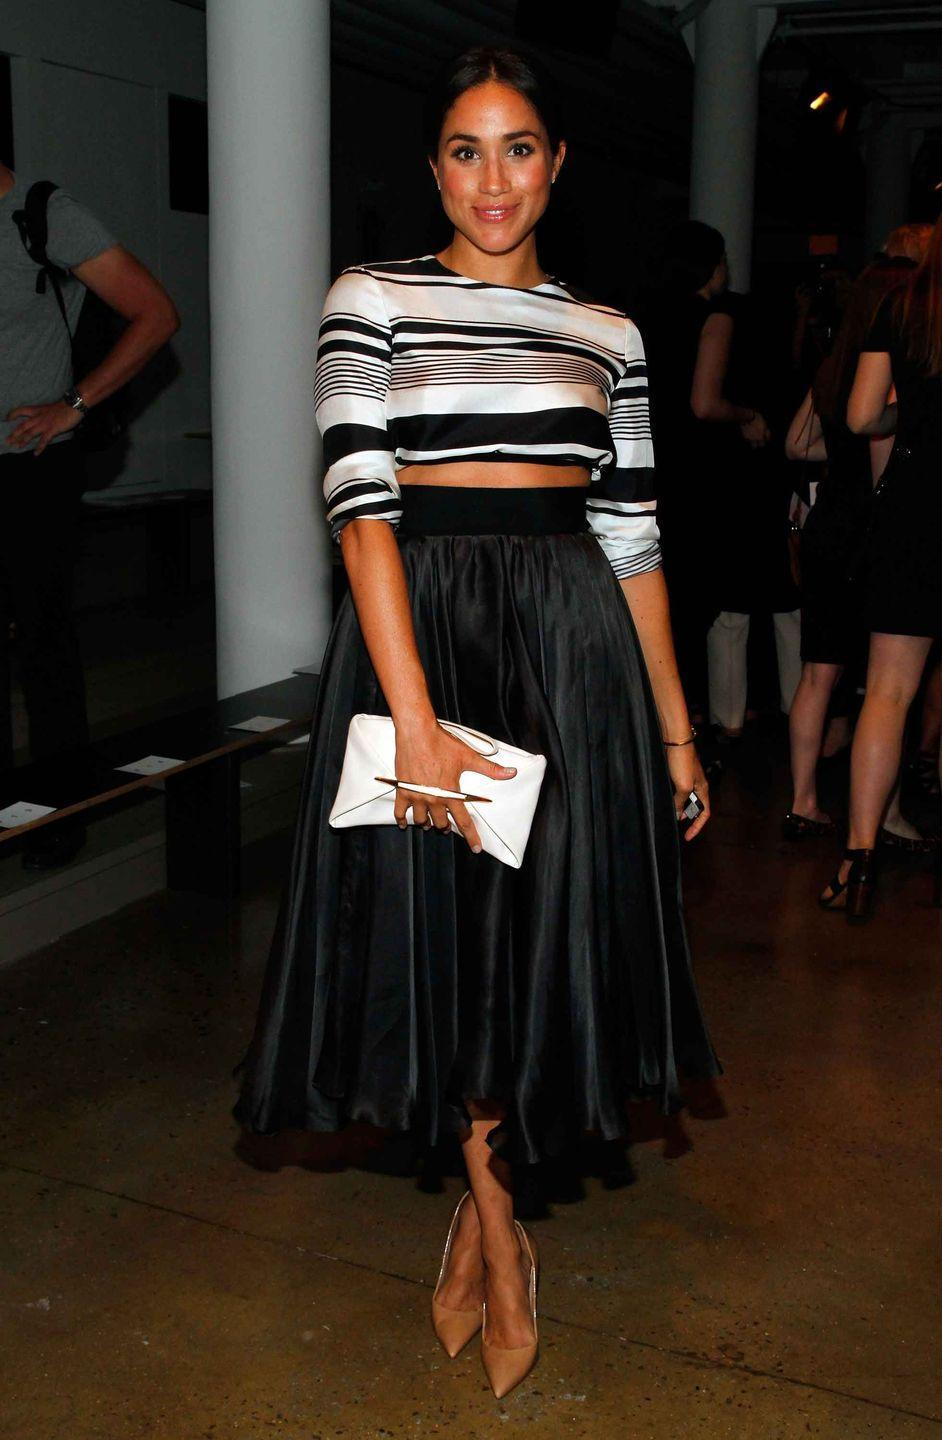 <p>Markle wears a tea-length black skirt and striped top while attending the Peter Som fashion show during Mercedes-Benz Fashion Week.</p>